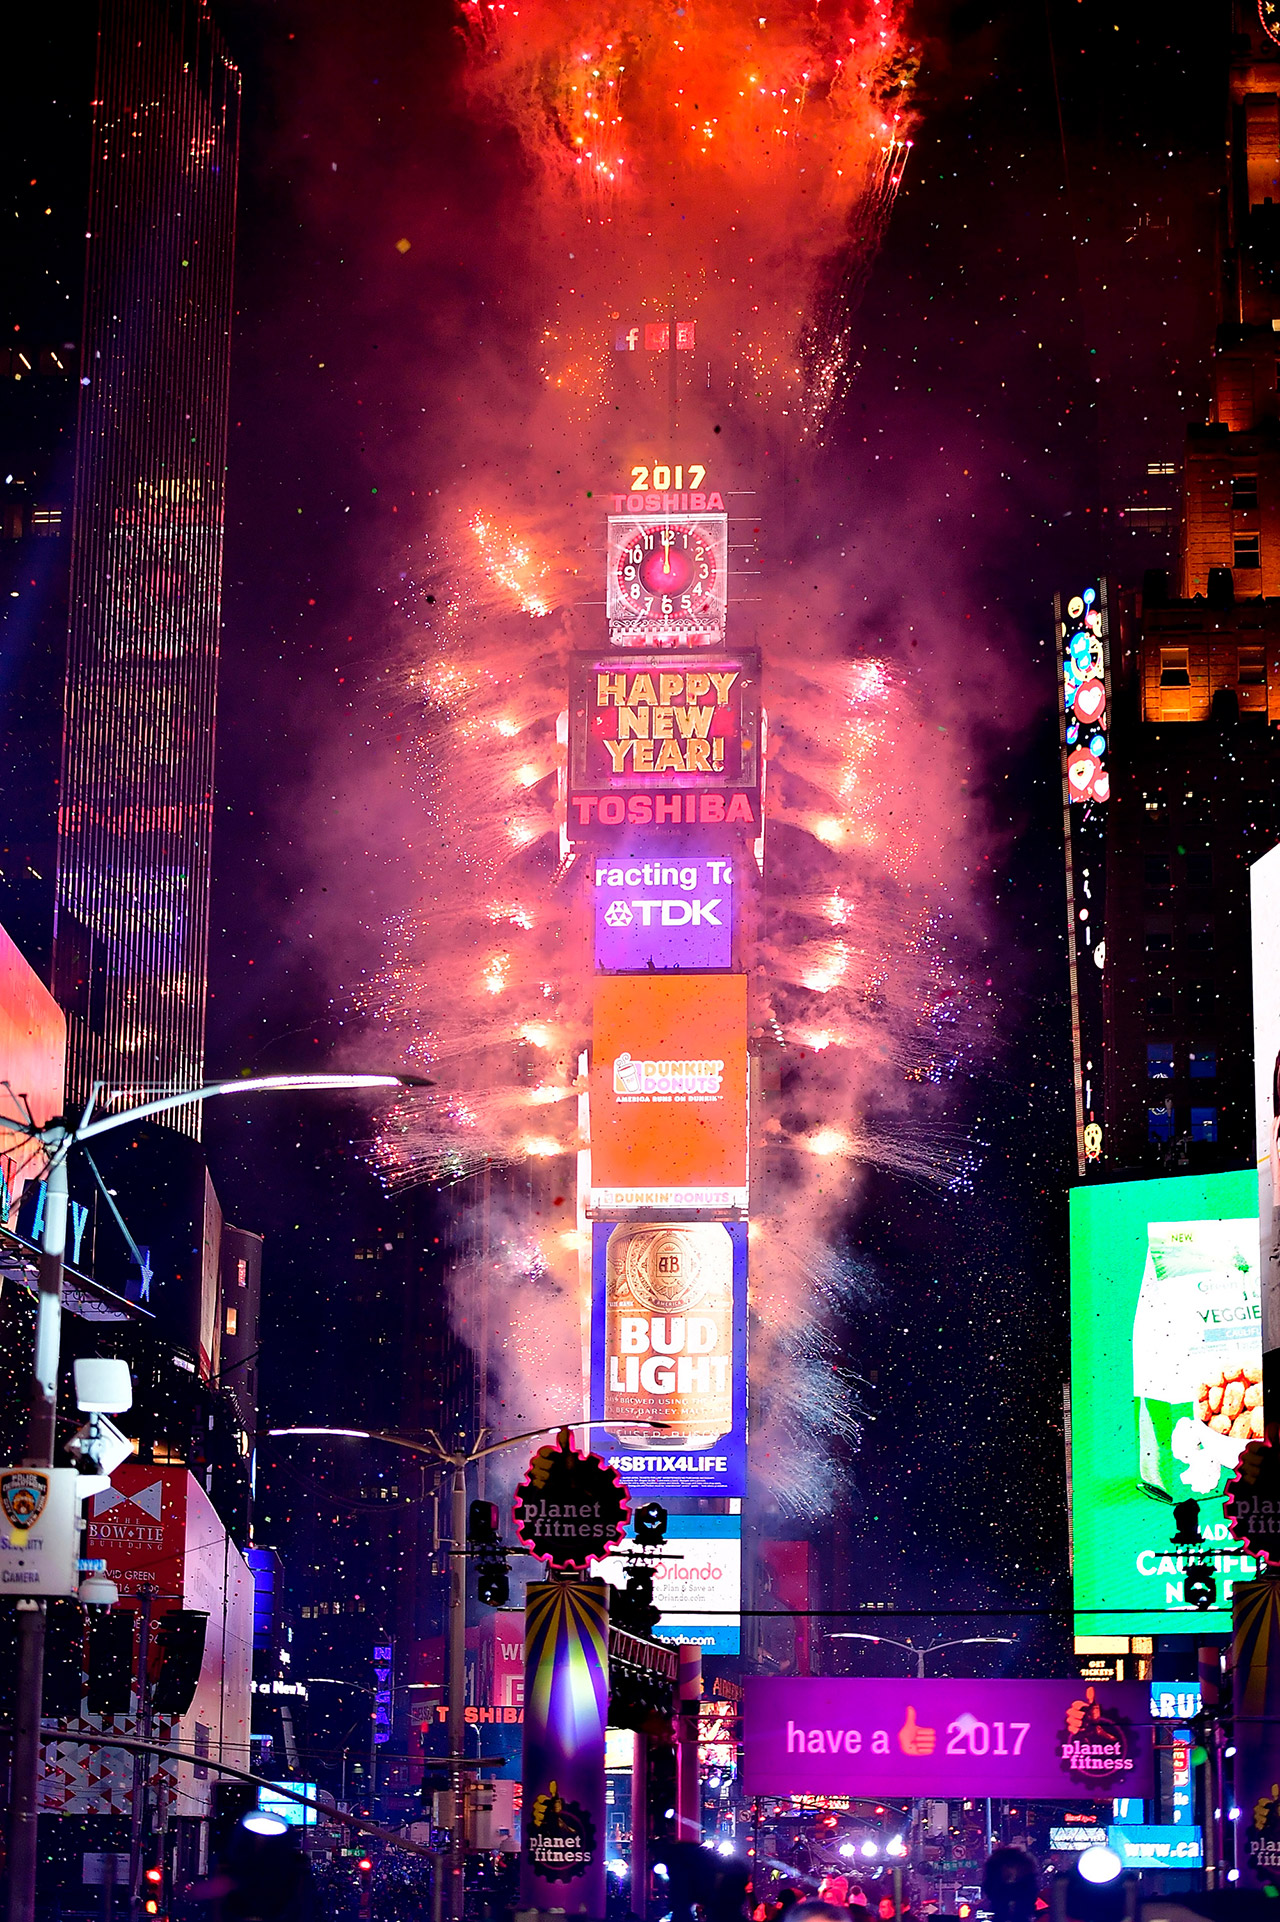 A Look at How New Year's Eve Is Celebrated Around the World